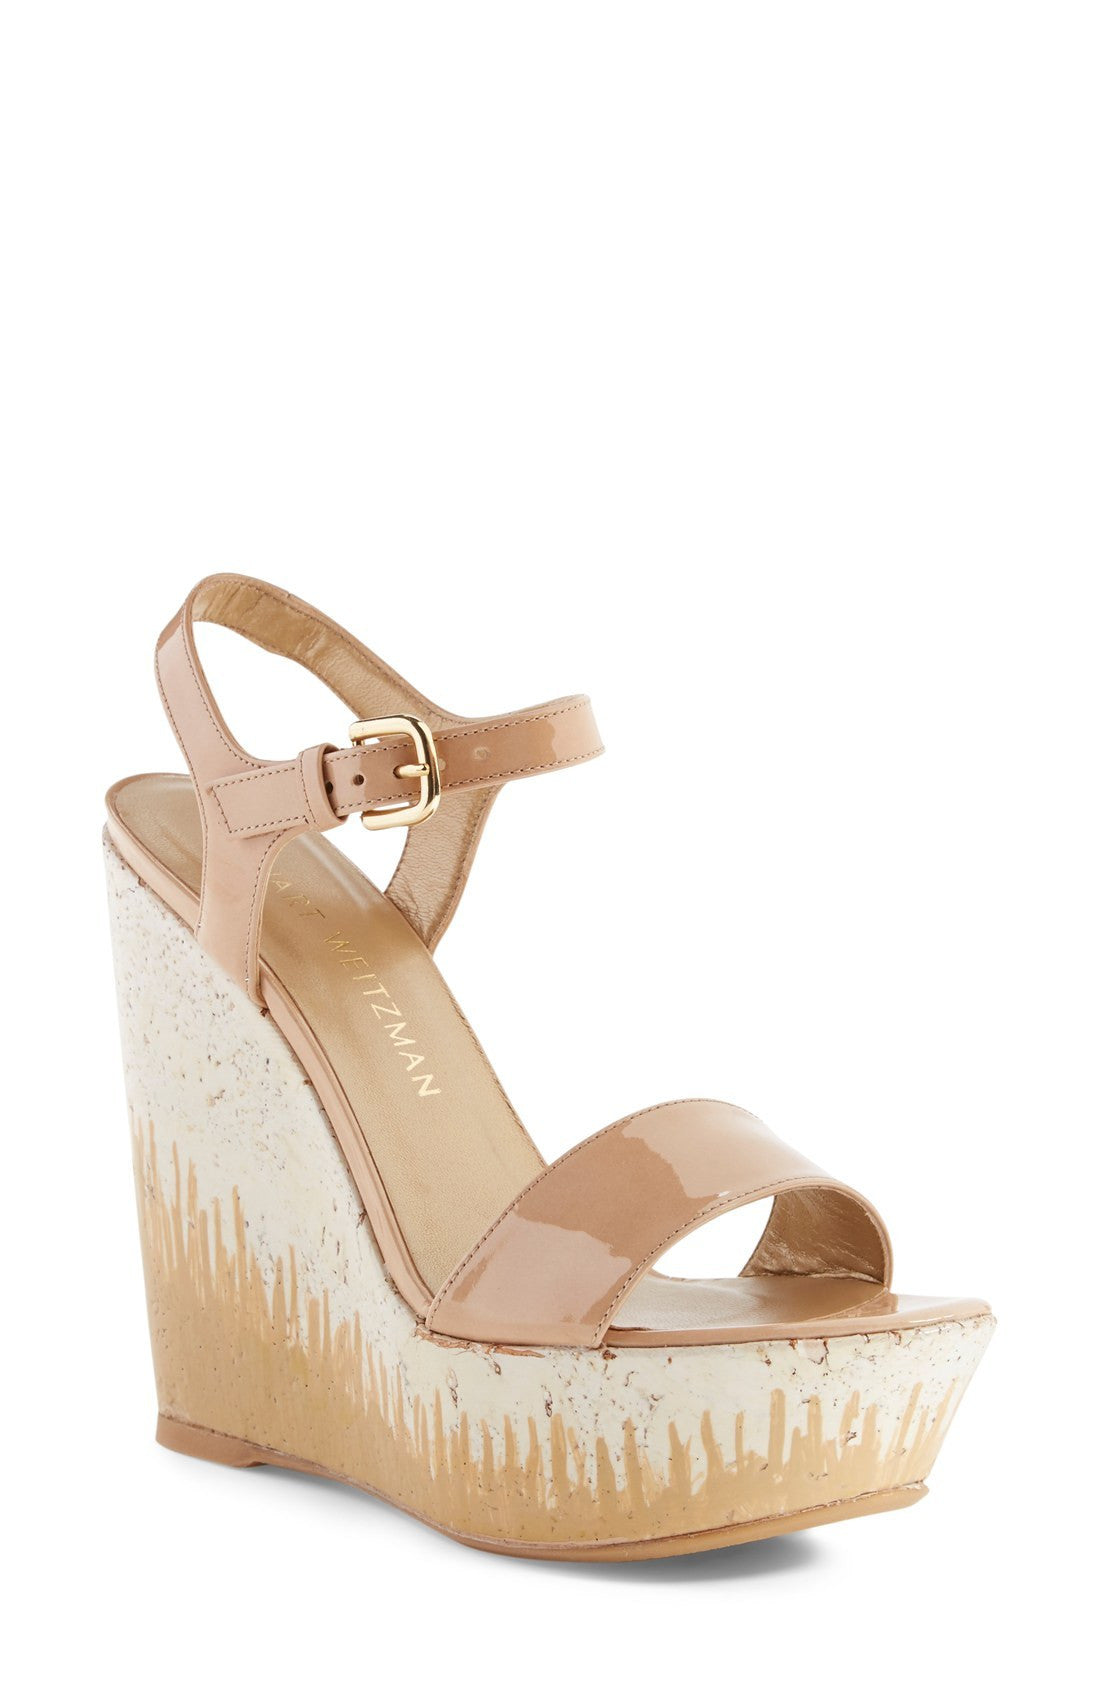 25aae5386da Stuart Weitzman Single-Wedge-Platform-Womens-Heel-Ankle -Buckle-Open-Toe-Sandal-Strap-Ivory-Nude-Patent-Leather -Bambina-Shoes.jpg v 1492188970